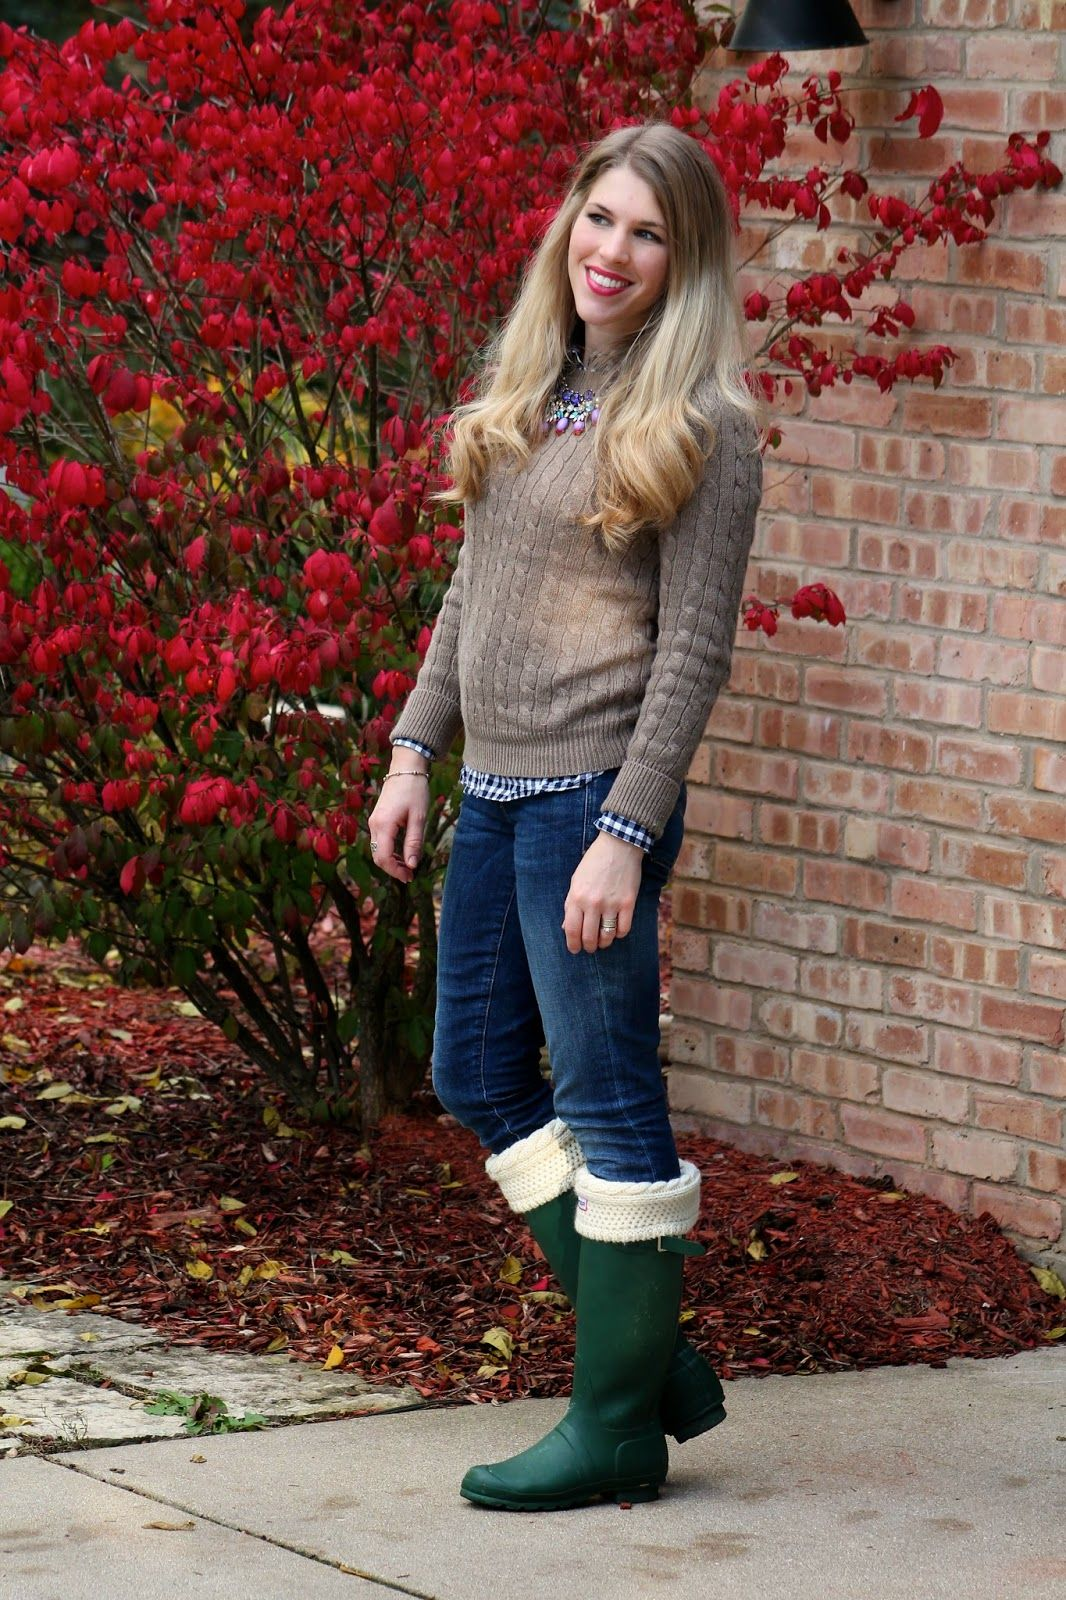 I do deClaire: Sweater, Gingham, and Hunter Boots